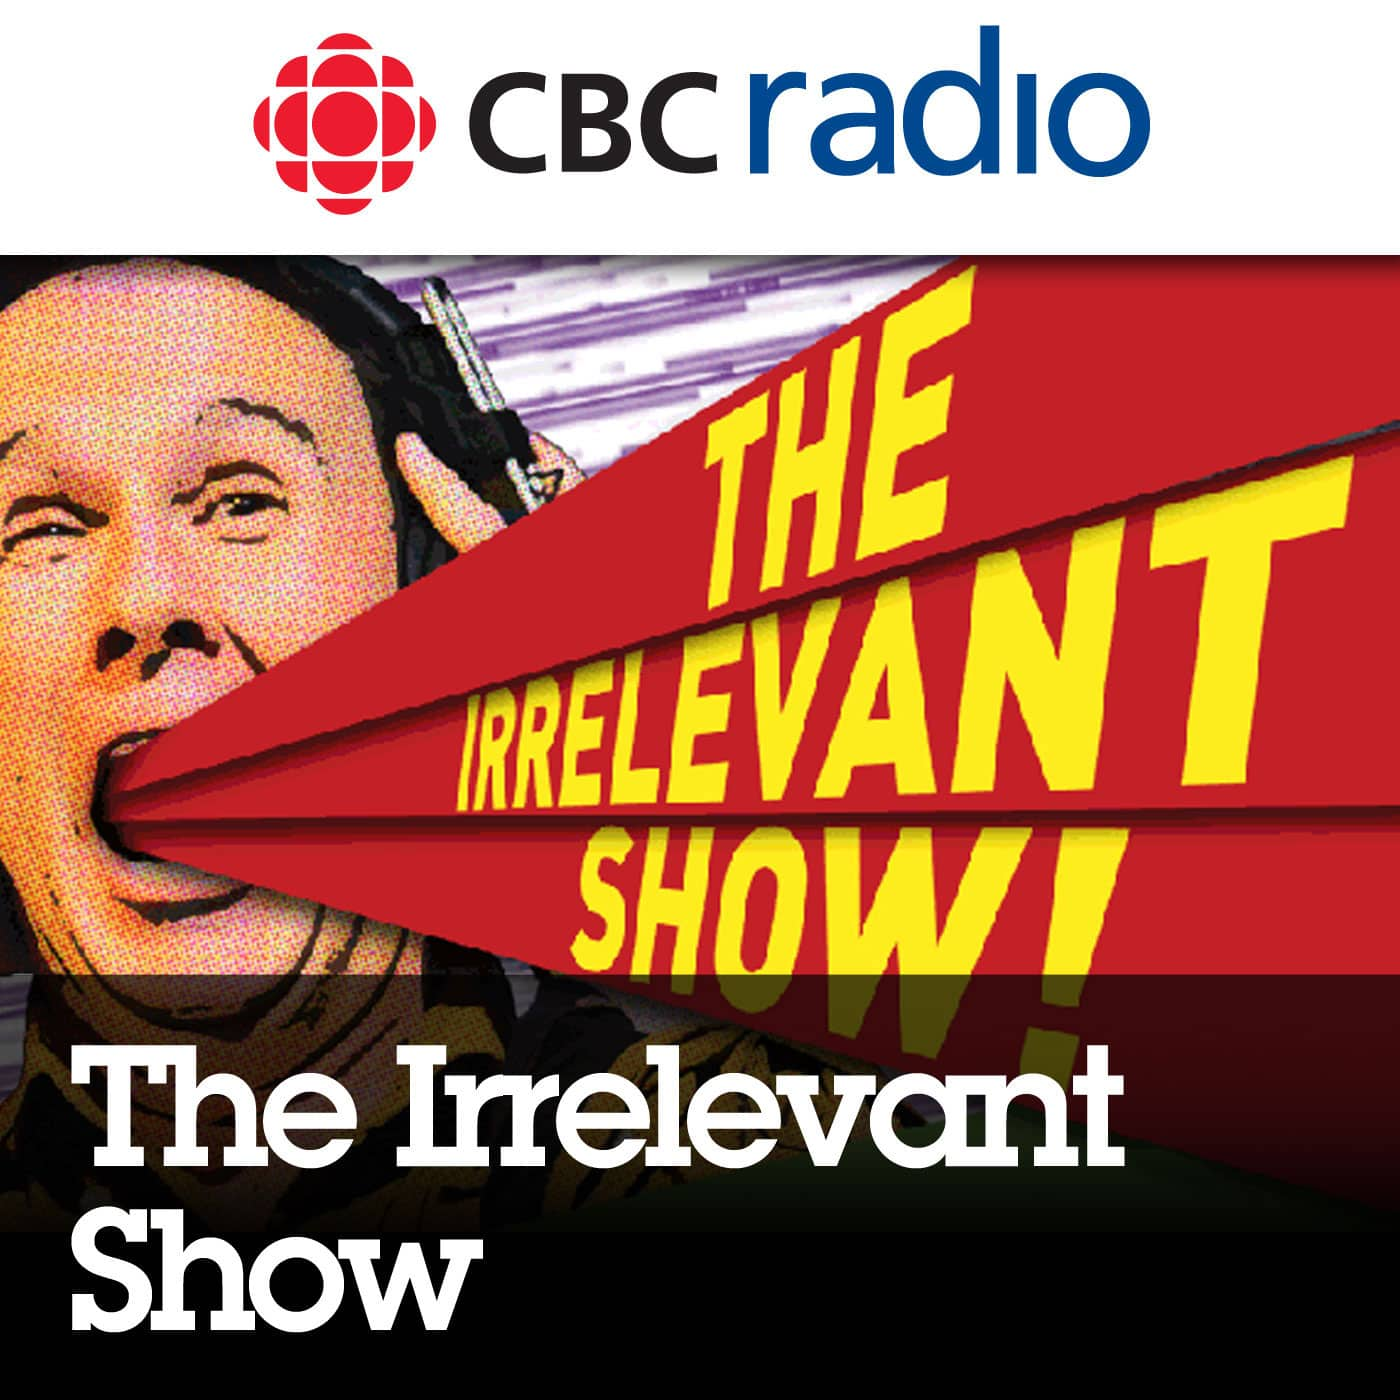 Episodes of The Irrelevant Show from CBC Radio